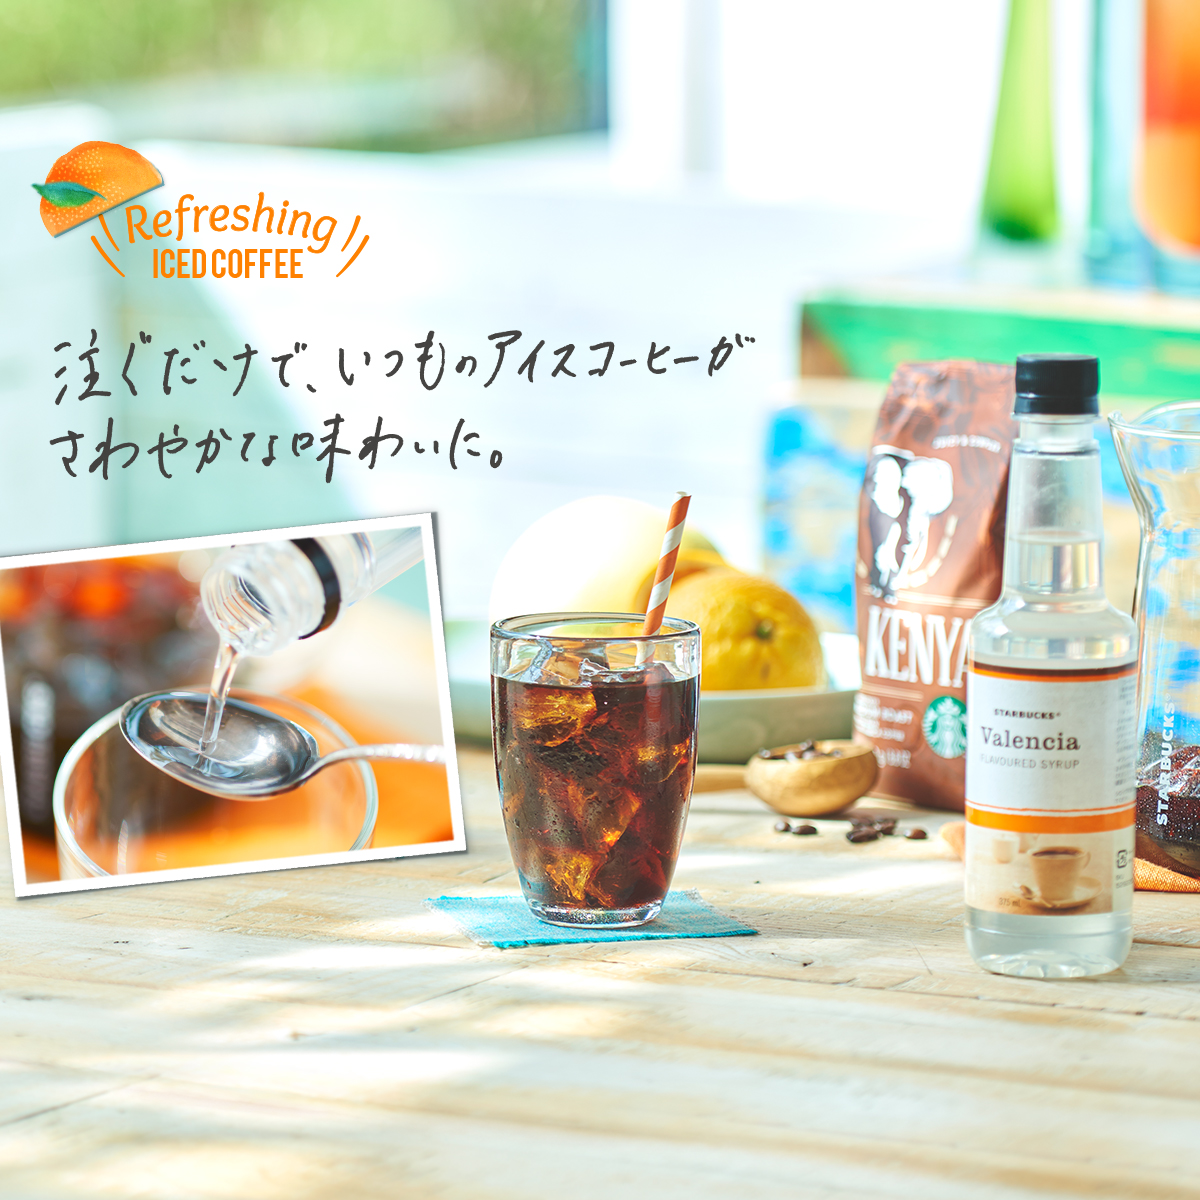 [季節のコーヒー] Refresing Iced Coffee